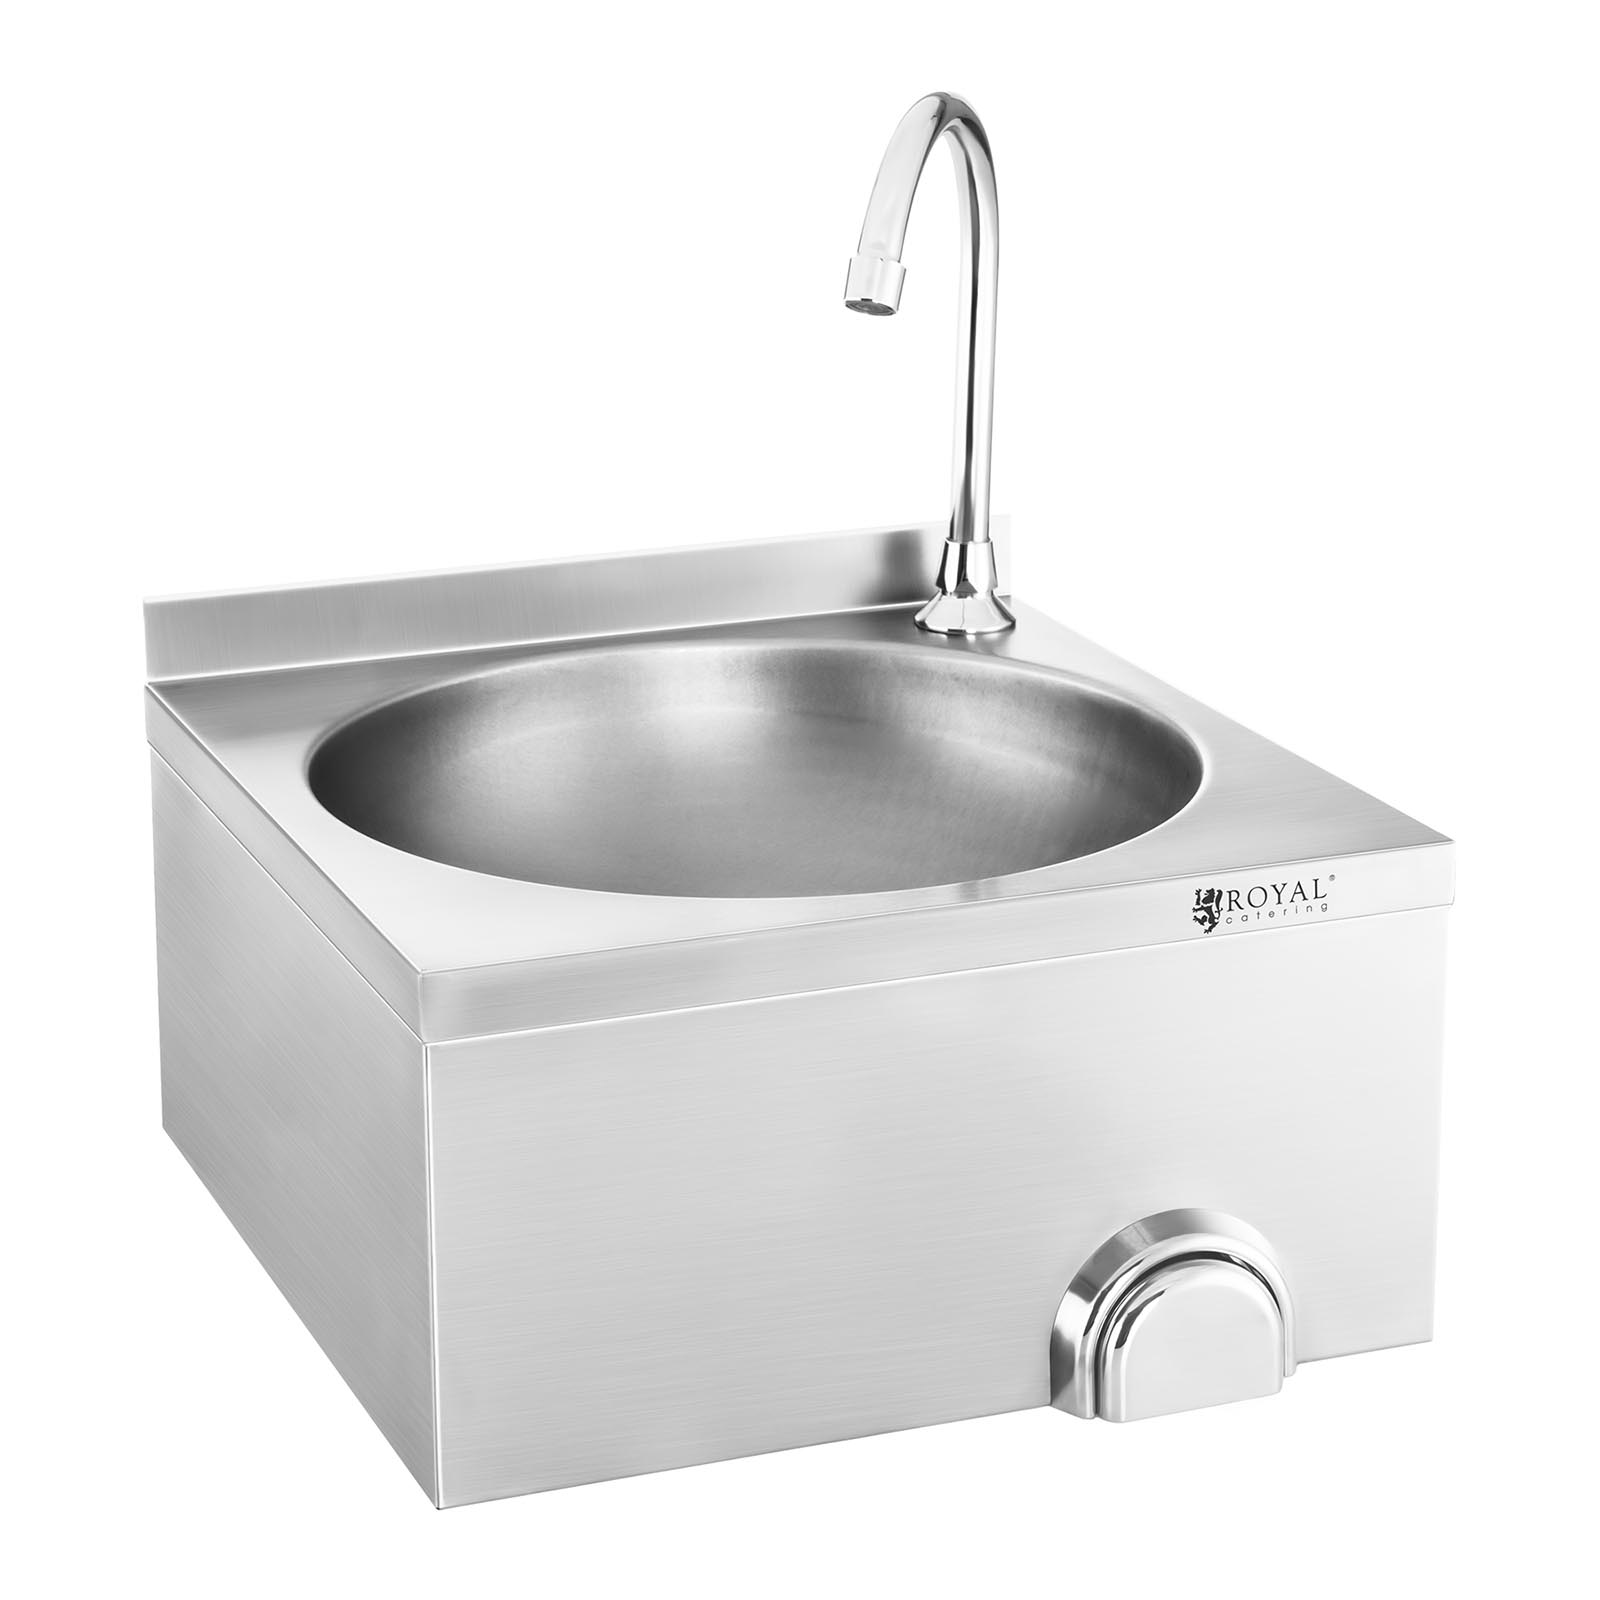 Catering Hand Free Sink Knee Operated Highly Hygenic Wash